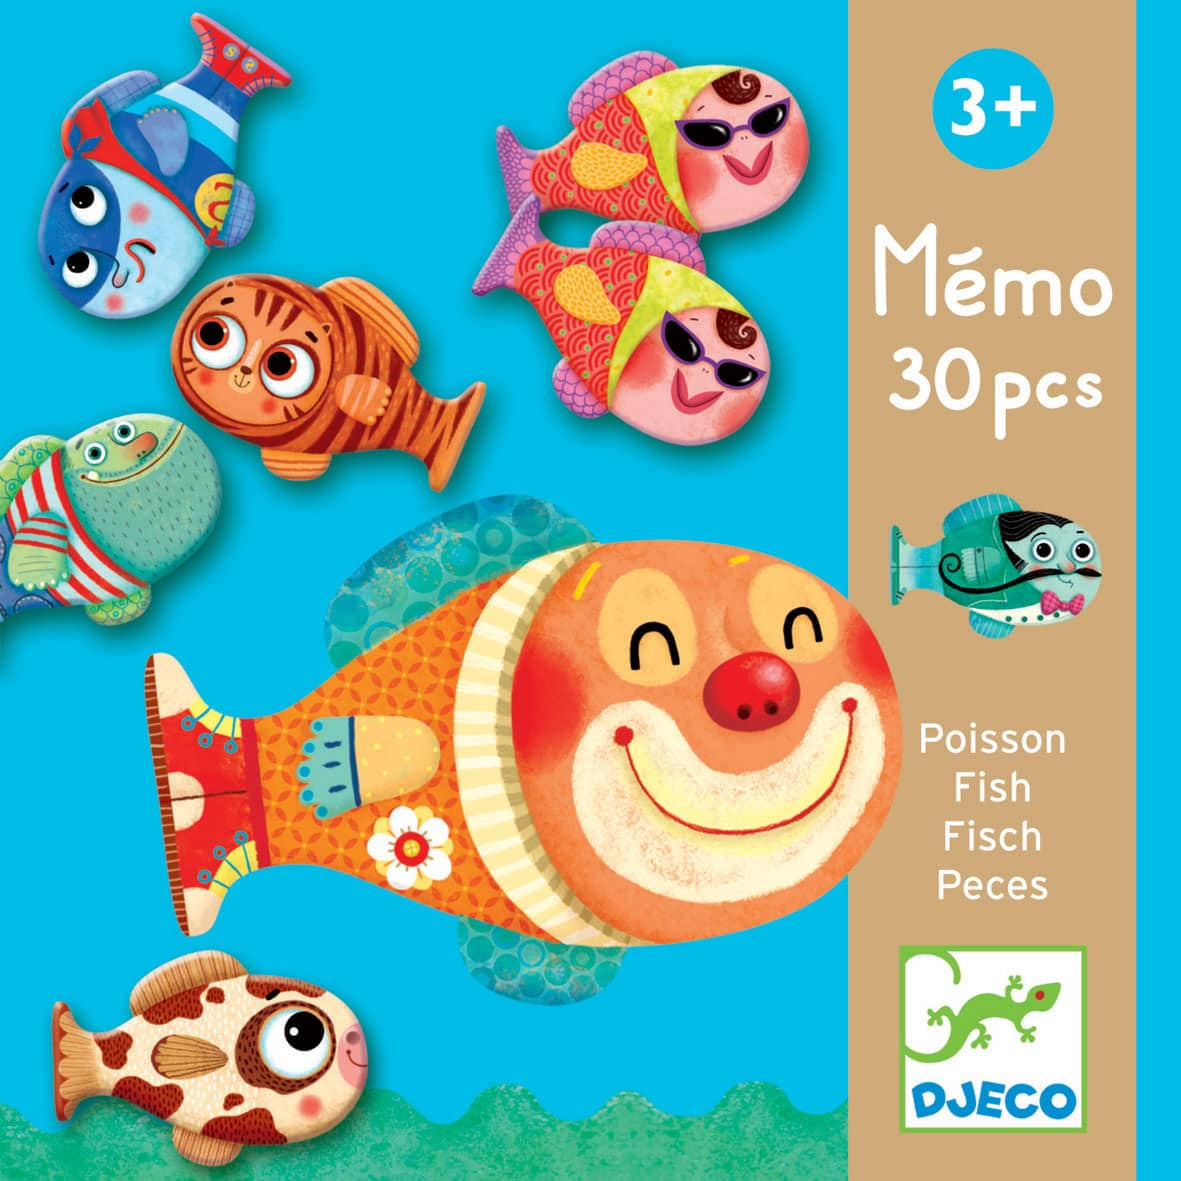 m mo poisson jeu de m moire et d 39 association pour enfant par djeco achat en ligne. Black Bedroom Furniture Sets. Home Design Ideas